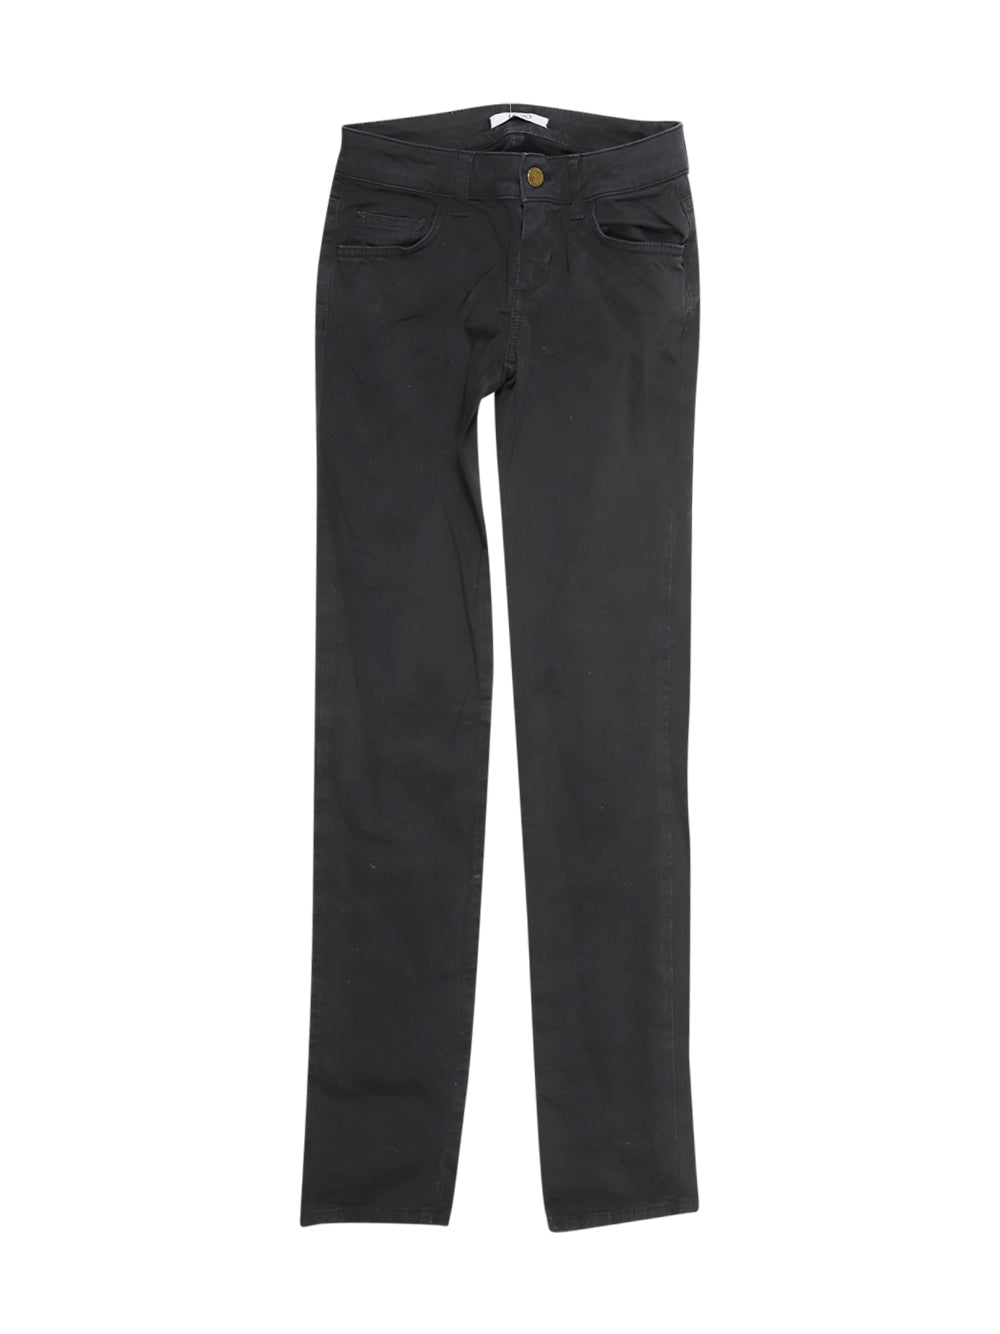 Front photo of Preloved Liu Jo Black Woman's trousers - size 8/S